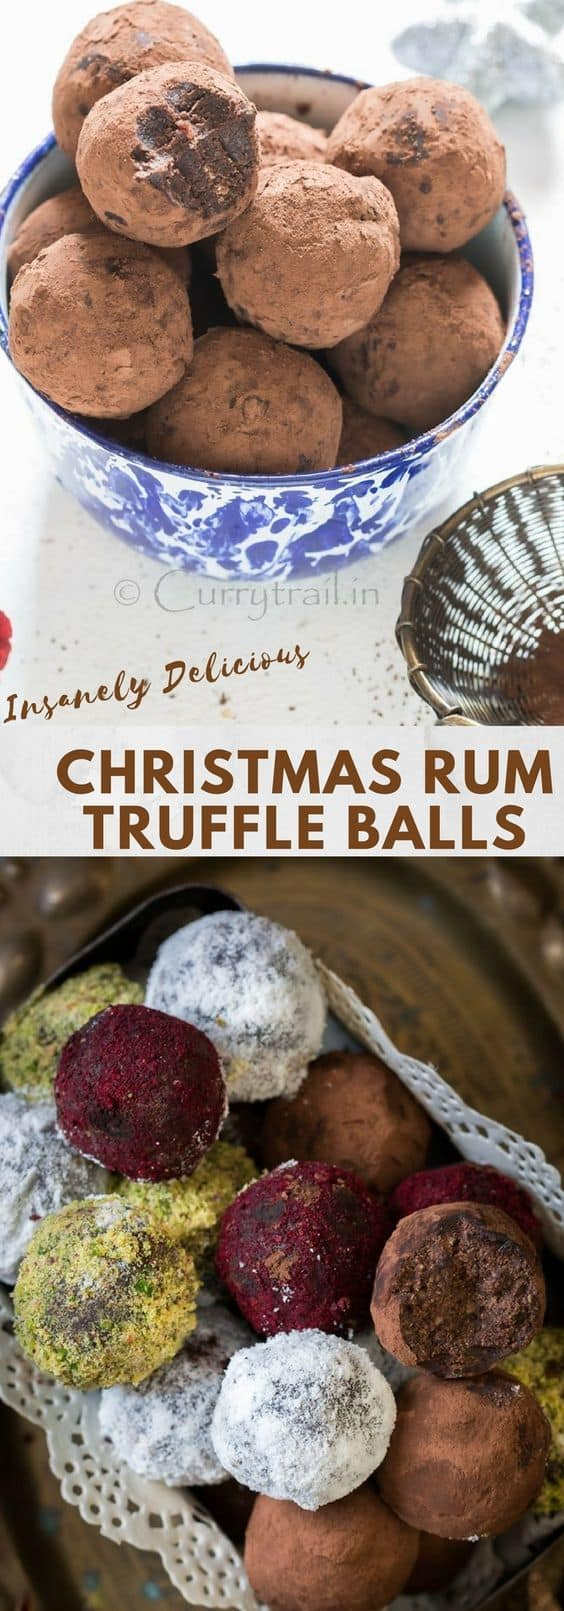 Christmas Rum Balls is simple to make and guaranteed to wow your guests